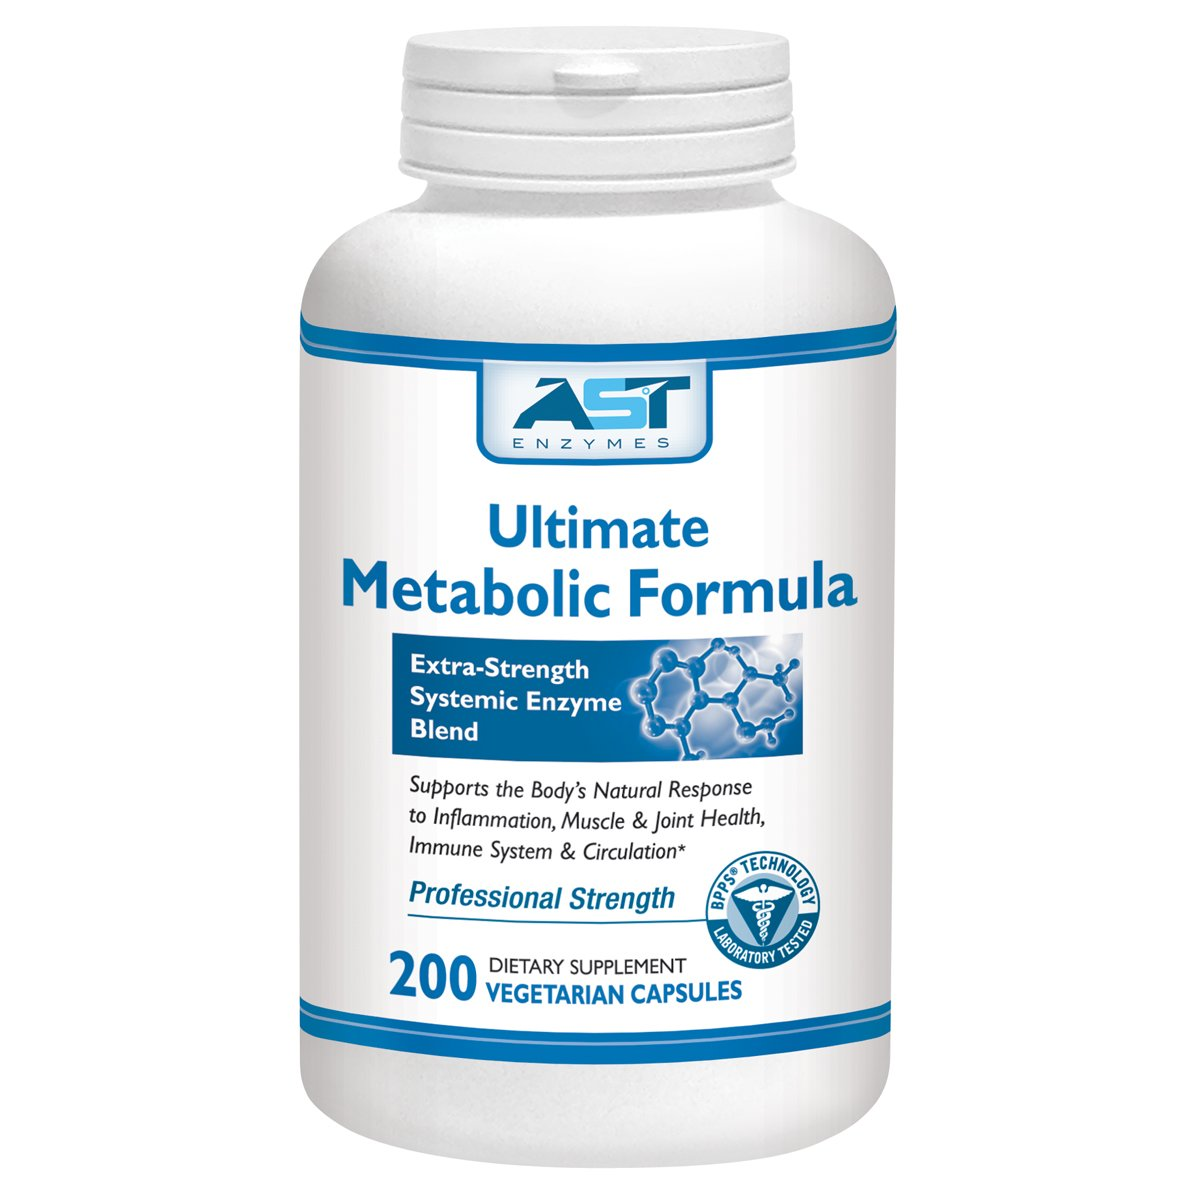 Ultimate Metabolic Formula – 200 Vegetarian Capsules – Premium Natural Systemic Enzymes Formula – Total Joint Support – Contains Enteric-Coated Serrapeptase – AST Enzymes